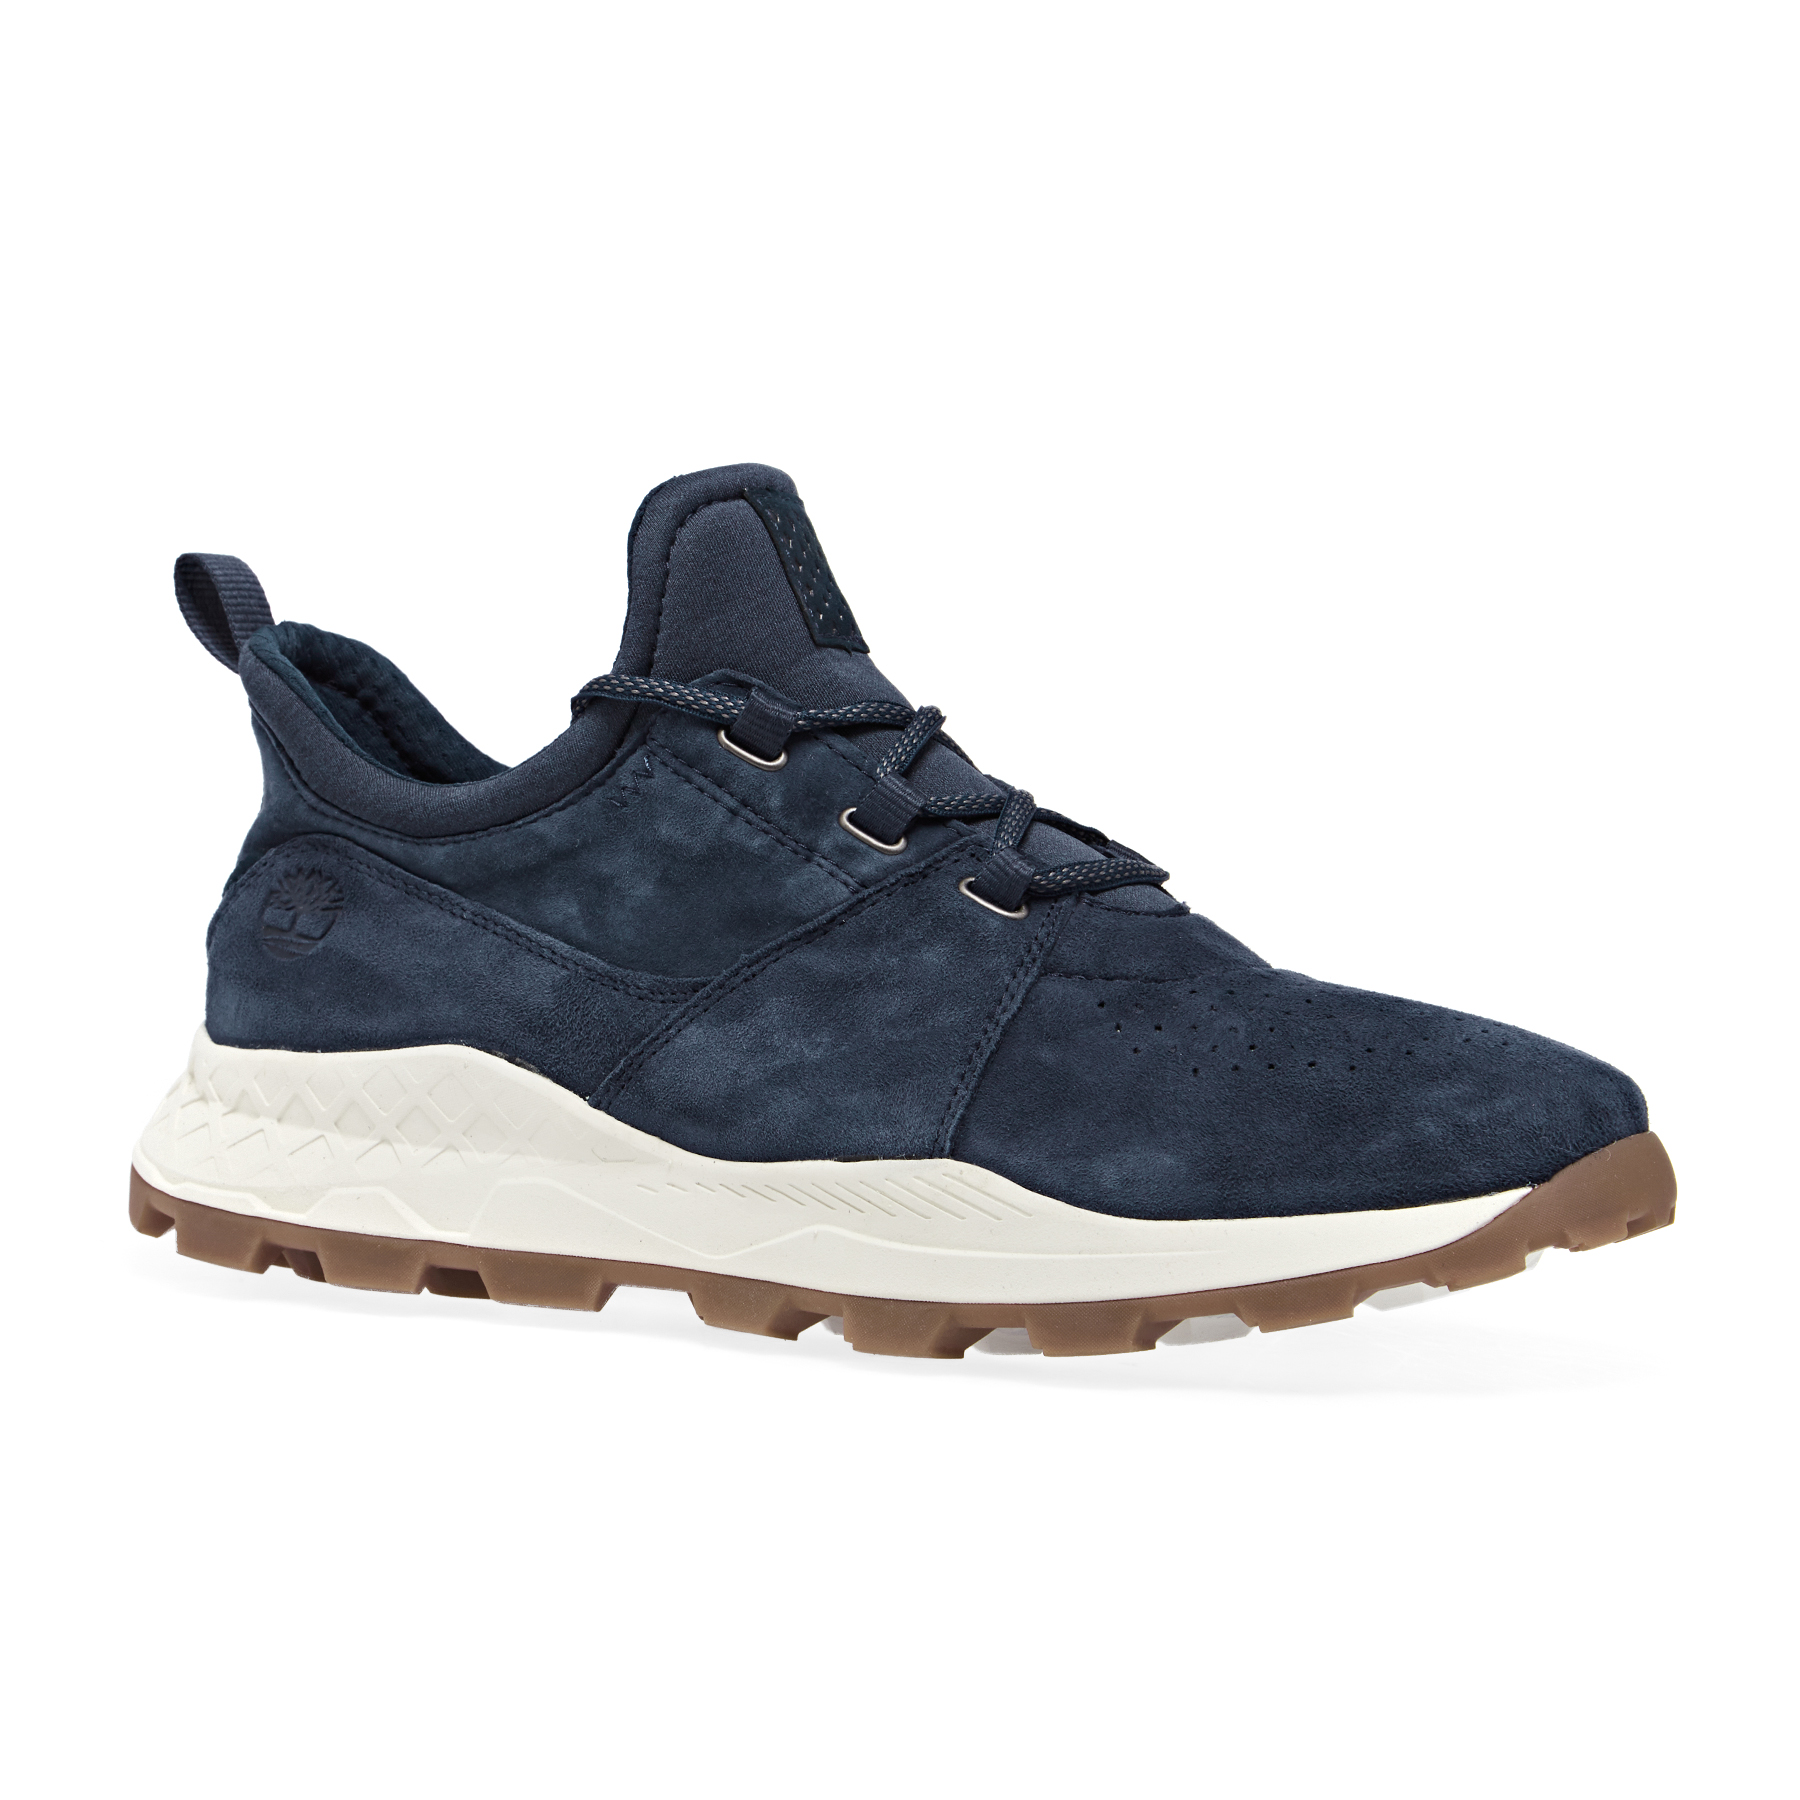 Soldes Chaussures Timberland Brooklyn Lace Oxford sur